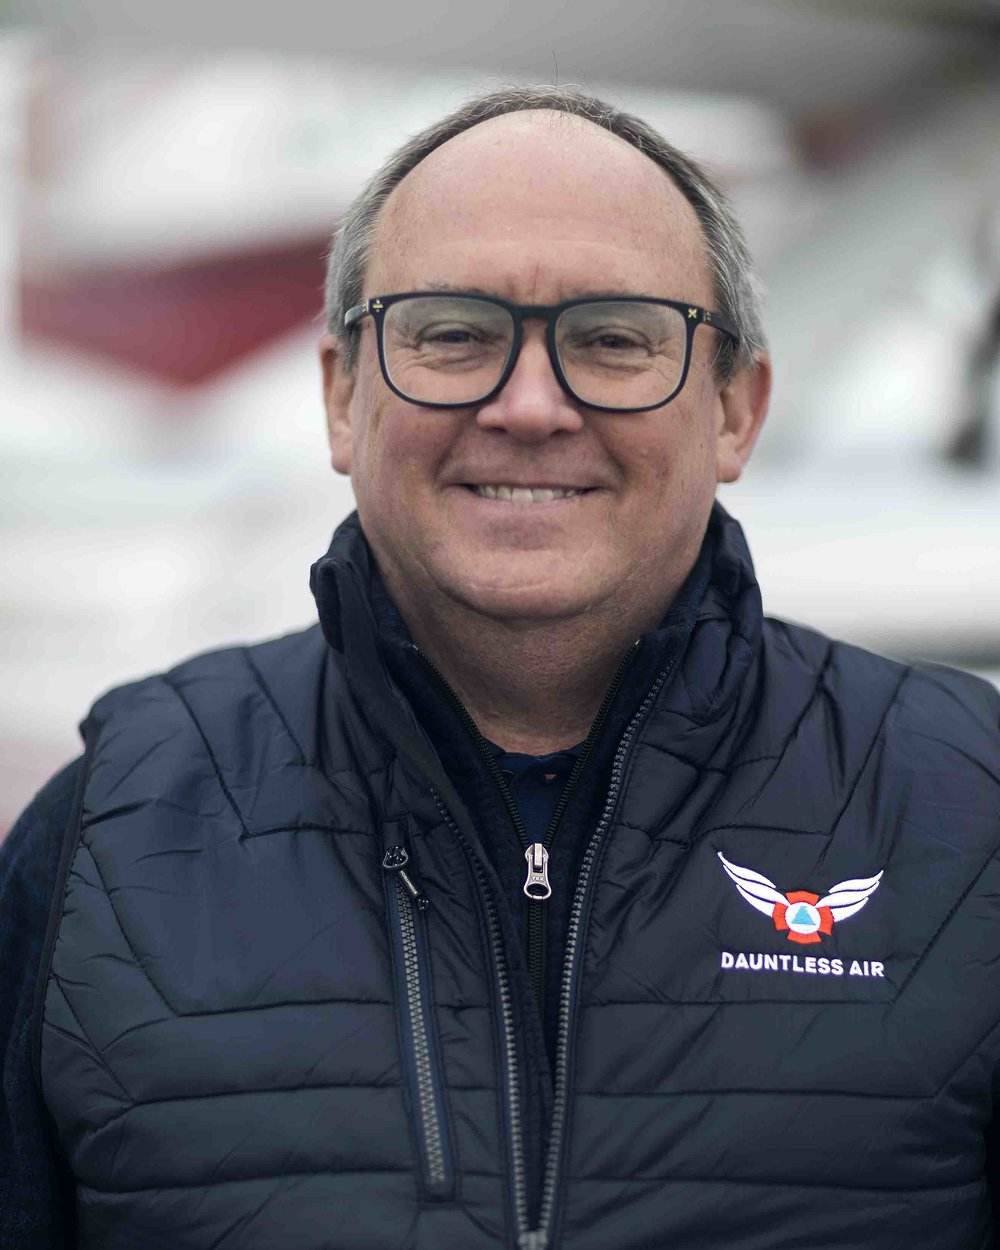 Jamie SargentBusiness Development Advisor  - Jamie is responsible for driving Dauntless Air's consistent and rapid growth across the US. He brings invaluable knowledge and perspective to the Dauntless team, which he accumulated over the course of his 35-year career in aviation and wildfire management. Prior to Dauntless, Jamie developed and oversaw the strategic and operational direction of the Ontario Ministry of Natural Resources' Aviation Services Program, developed and implemented amphibious water scooper air tanker modernization plans, and held a senior advisory role with the Fire Boss program at Wipaire/Fire Boss LLC.